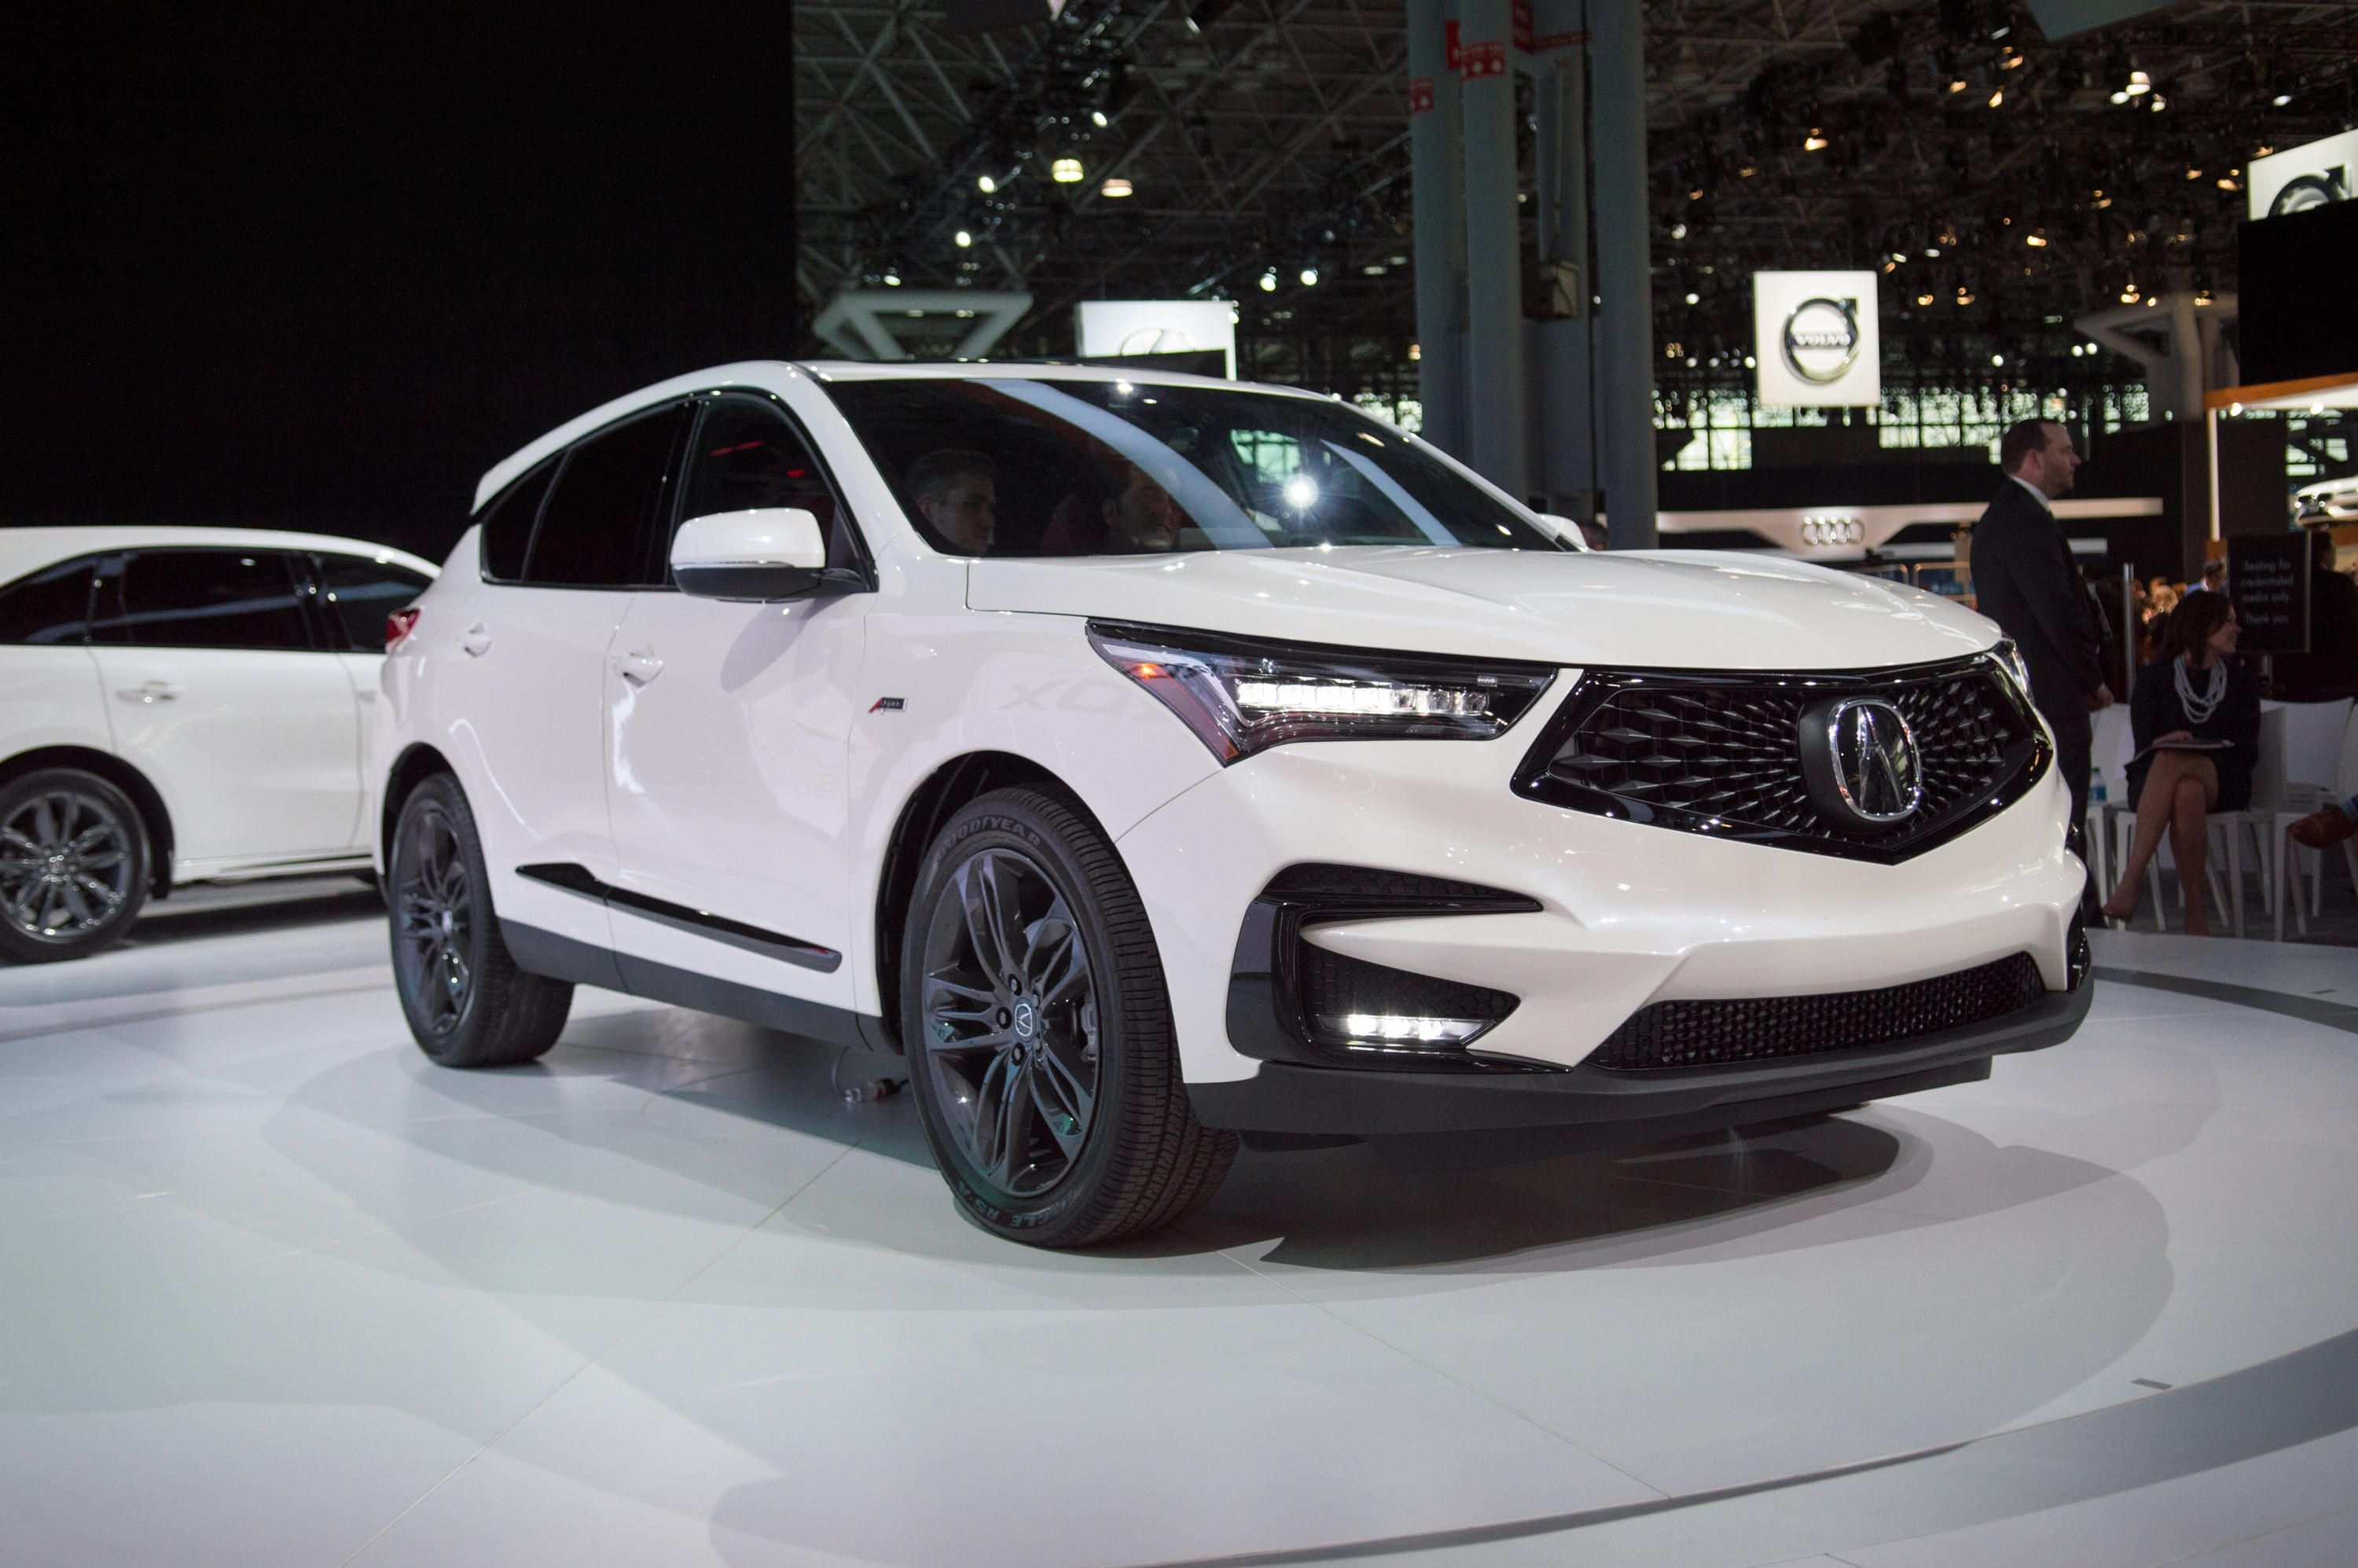 77 Gallery of 2019 Acura 2019 Research New with 2019 Acura 2019